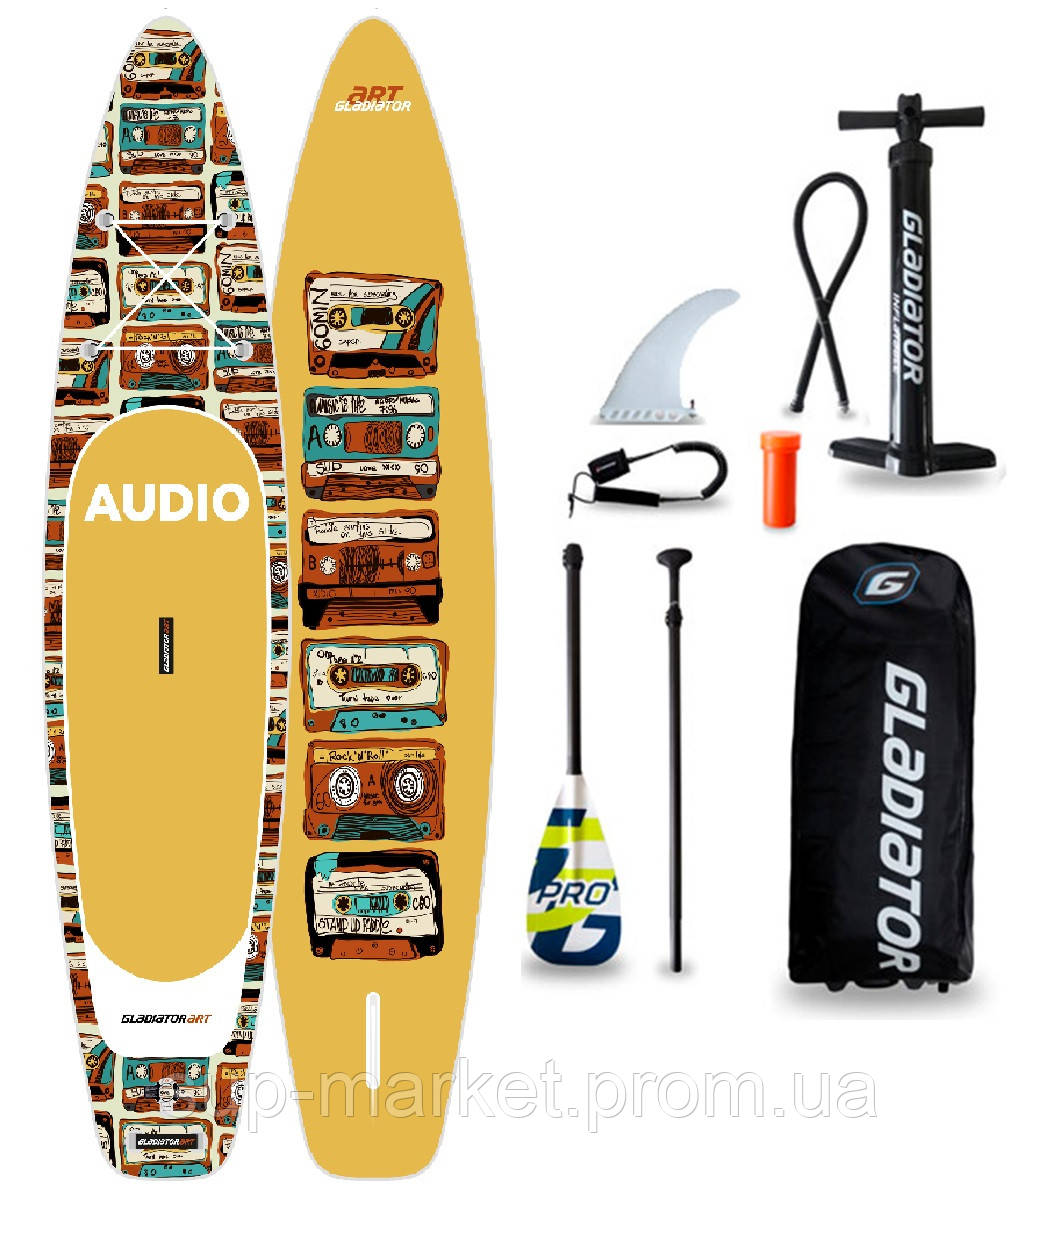 "SUP доска Gladiator 90TH 11'2"" x 31"" x 4,75"", 26psi, 2020"